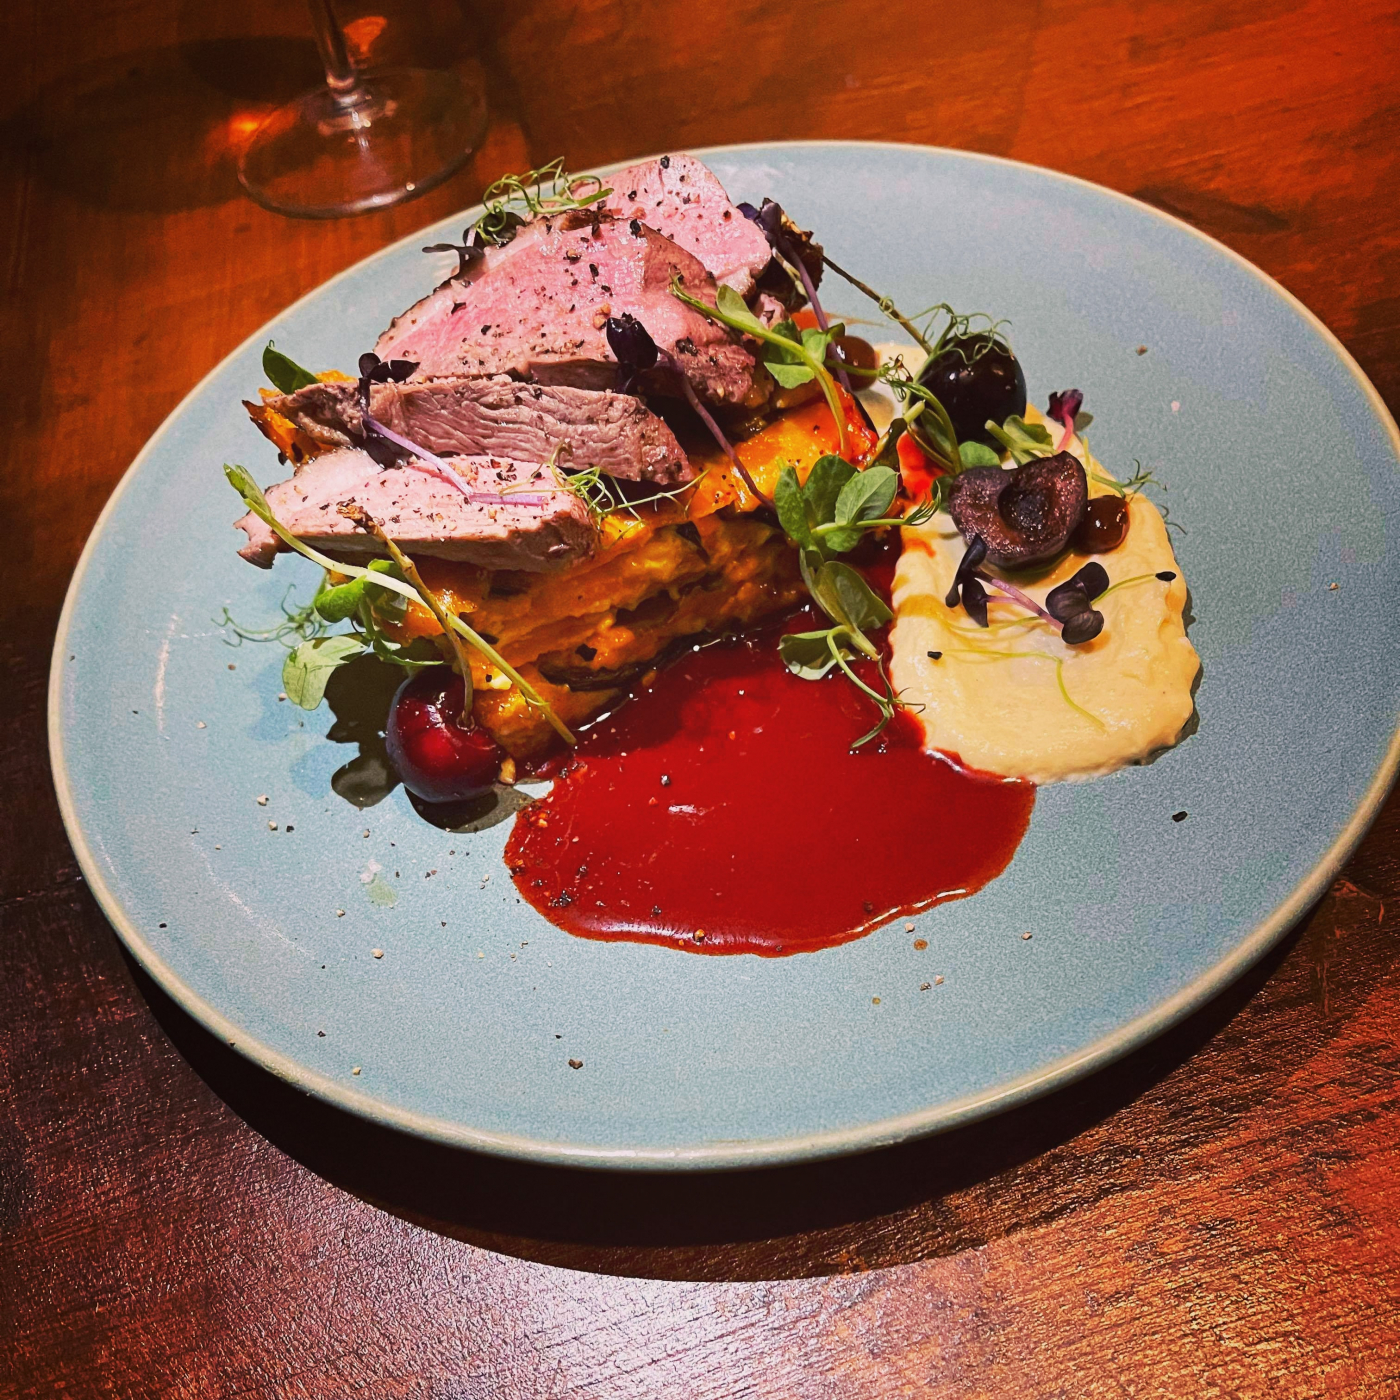 Coffee rubbed duck breast, oatmeal, parsnips and vanilla purree, sweet potato pave, Maraschino jus.